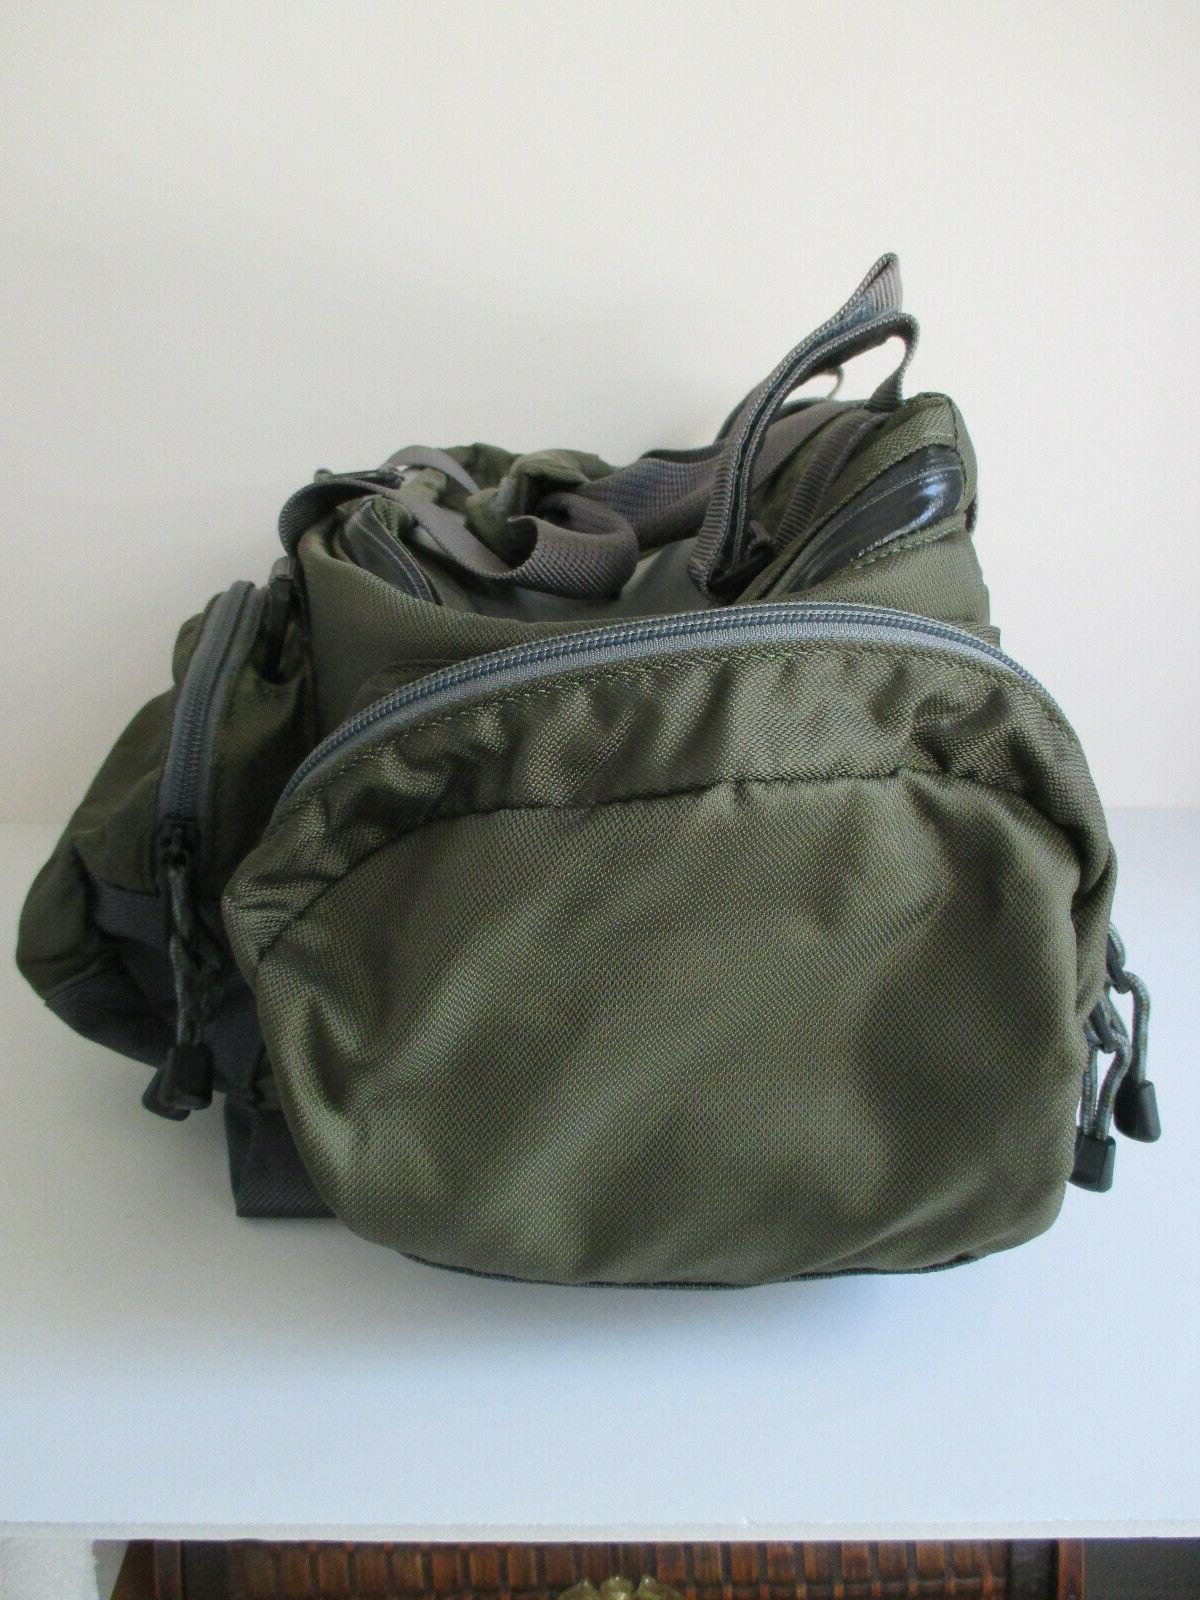 Orvis Multi-Pocket Bag with Nylon NEW NEVER USED